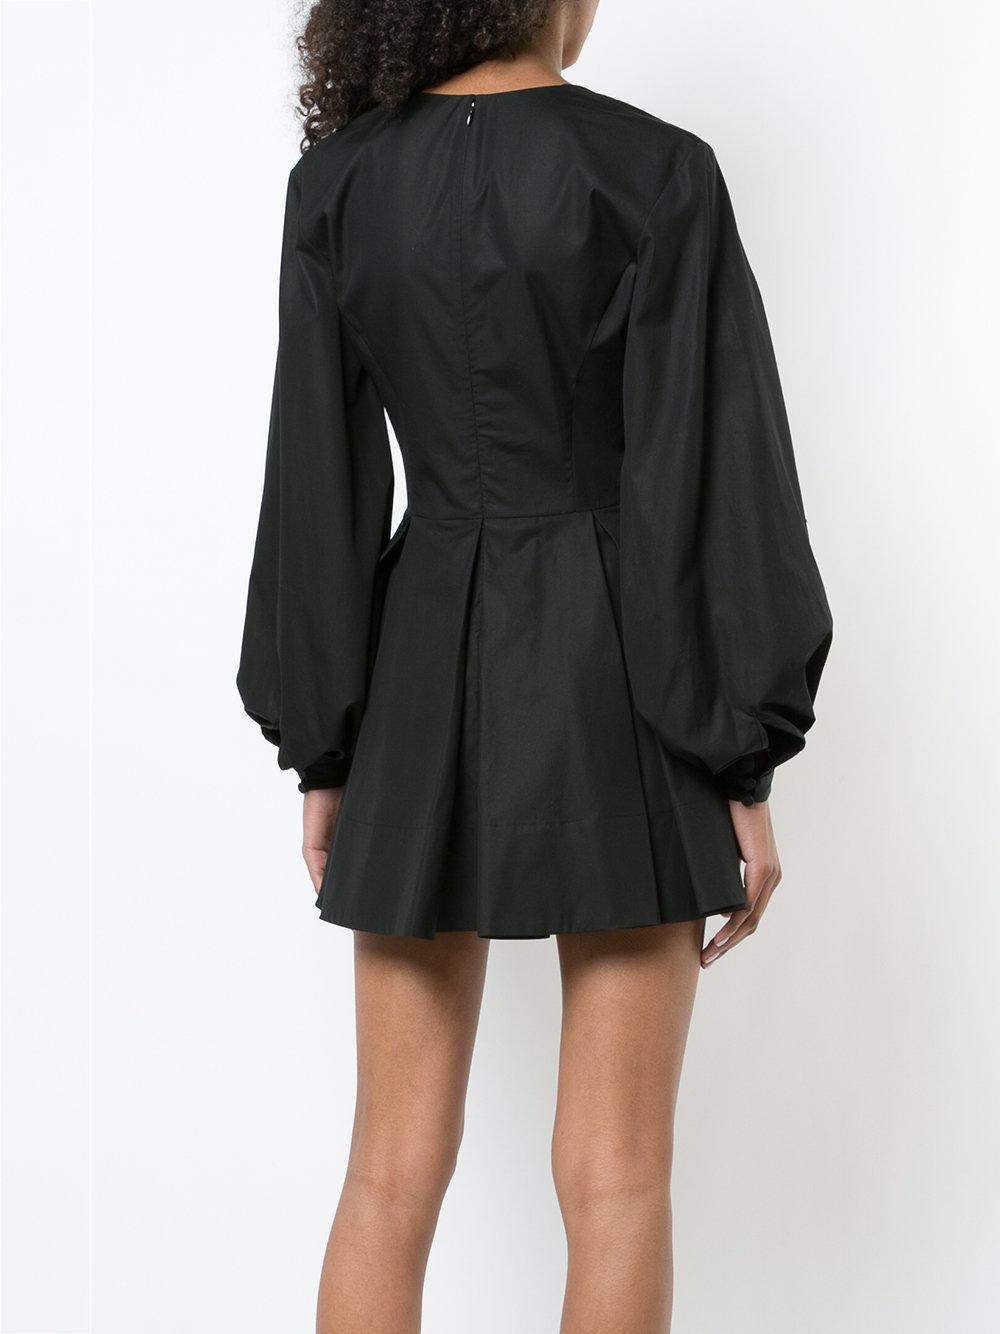 Denise dress - Black Khaite Clearance 100% Guaranteed In China Outlet Explore Fast Delivery Cheap Online Clearance Pre Order OQVaXG